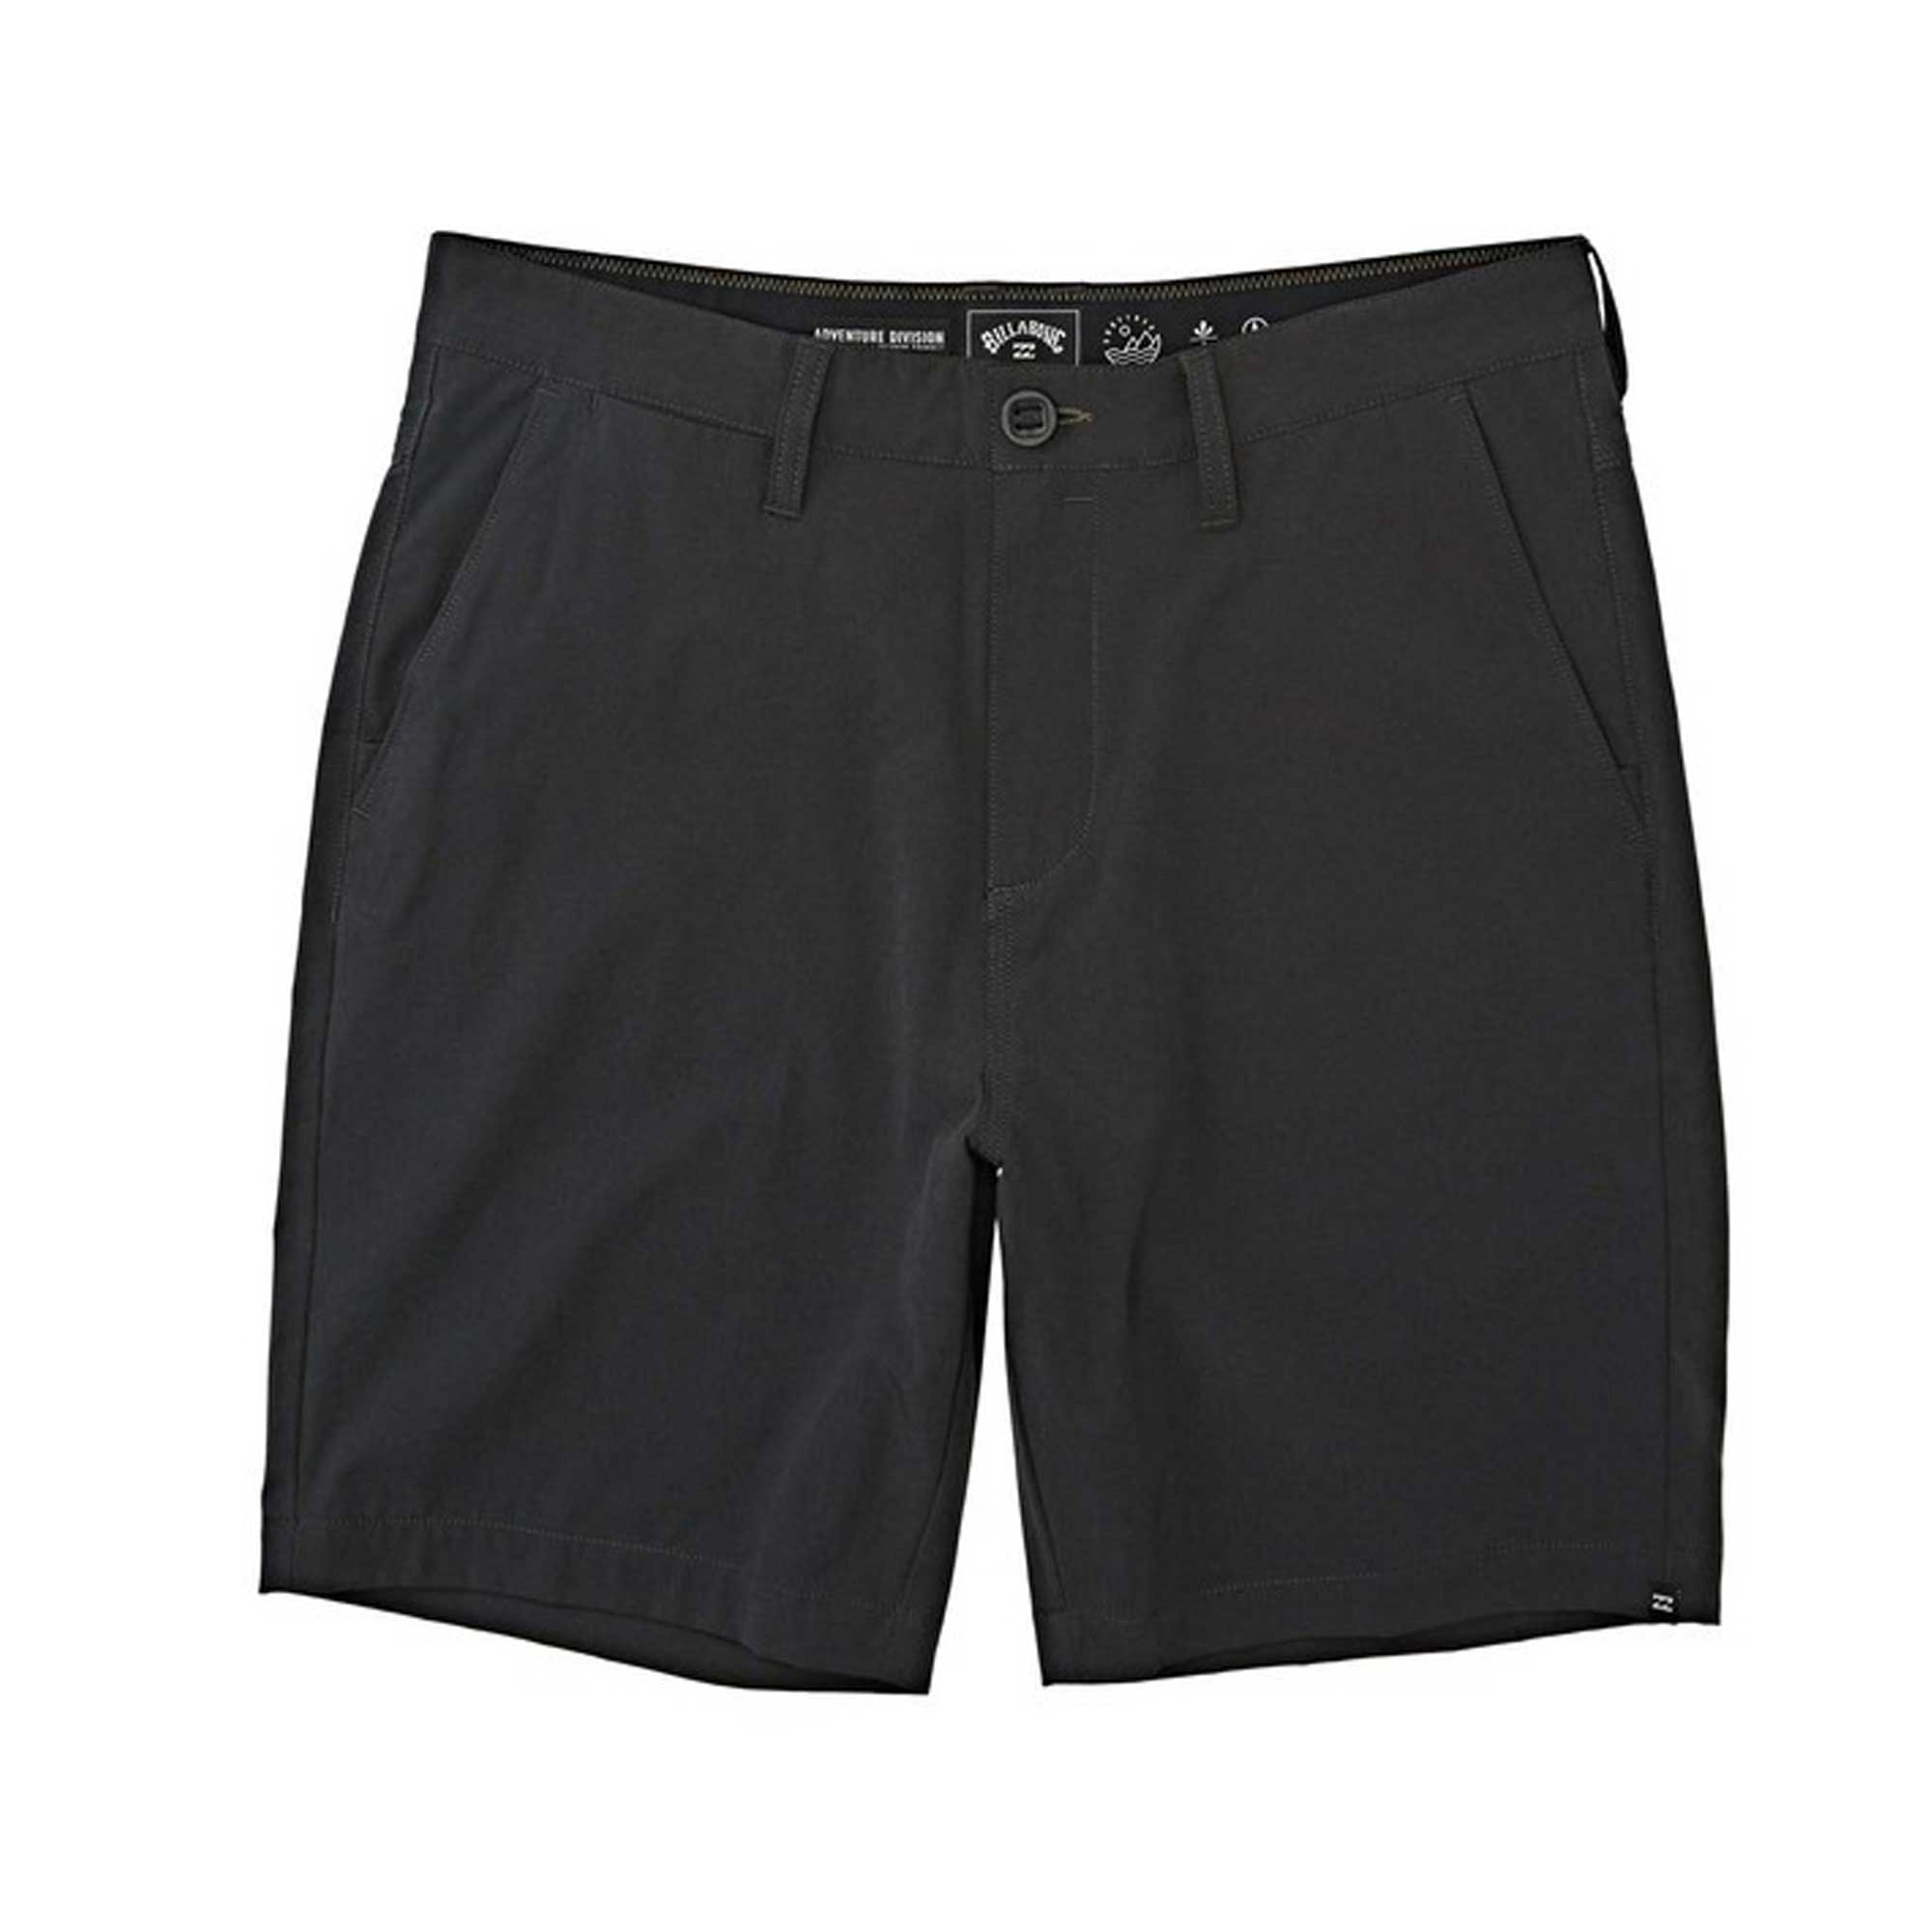 Billabong Surftrek Heather Walkshorts - Black